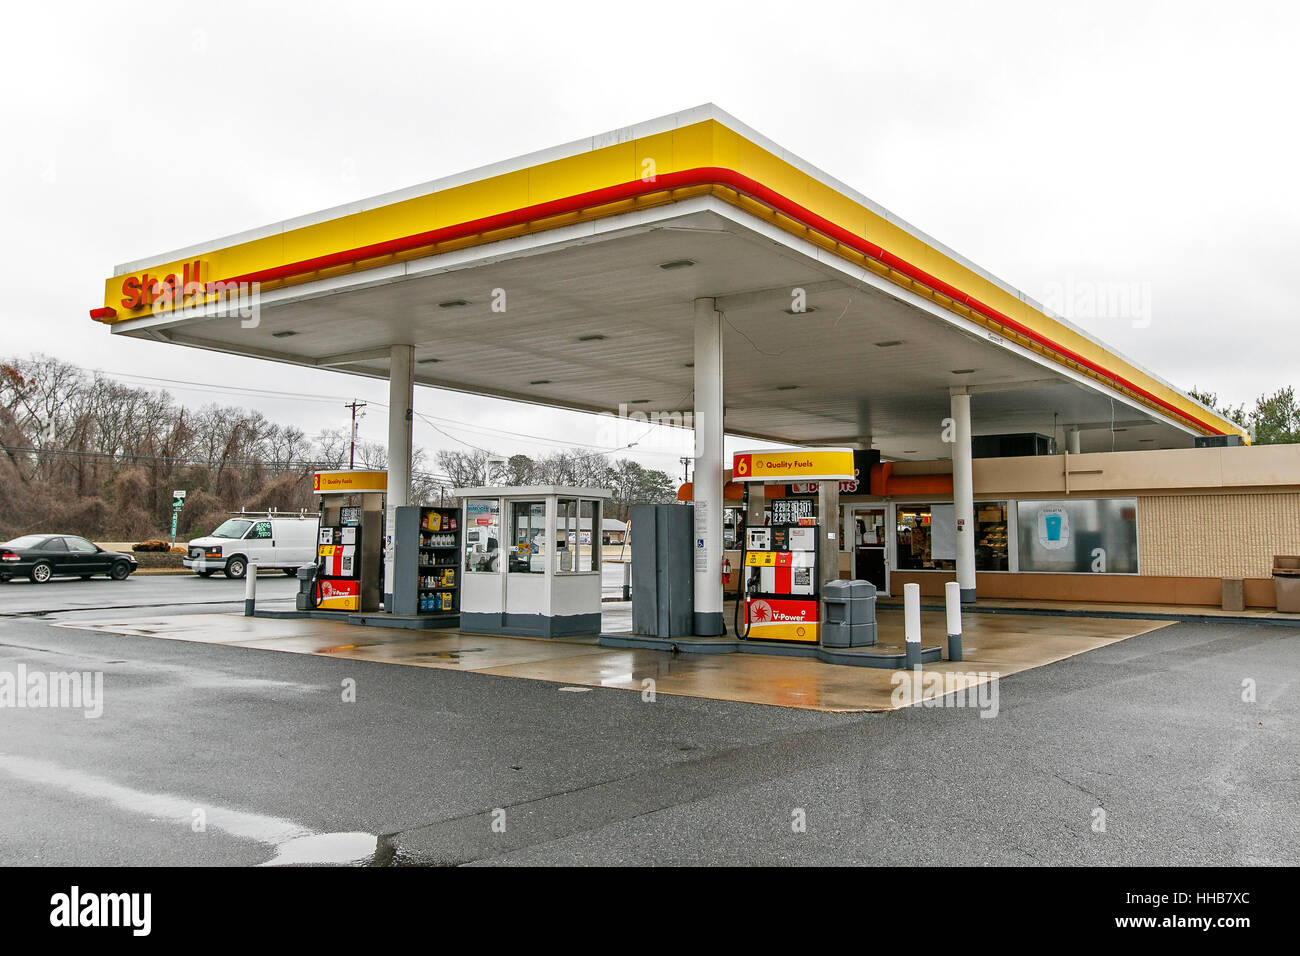 Shell gas station is seen on a cloudy day Stock Photo, Royalty ...